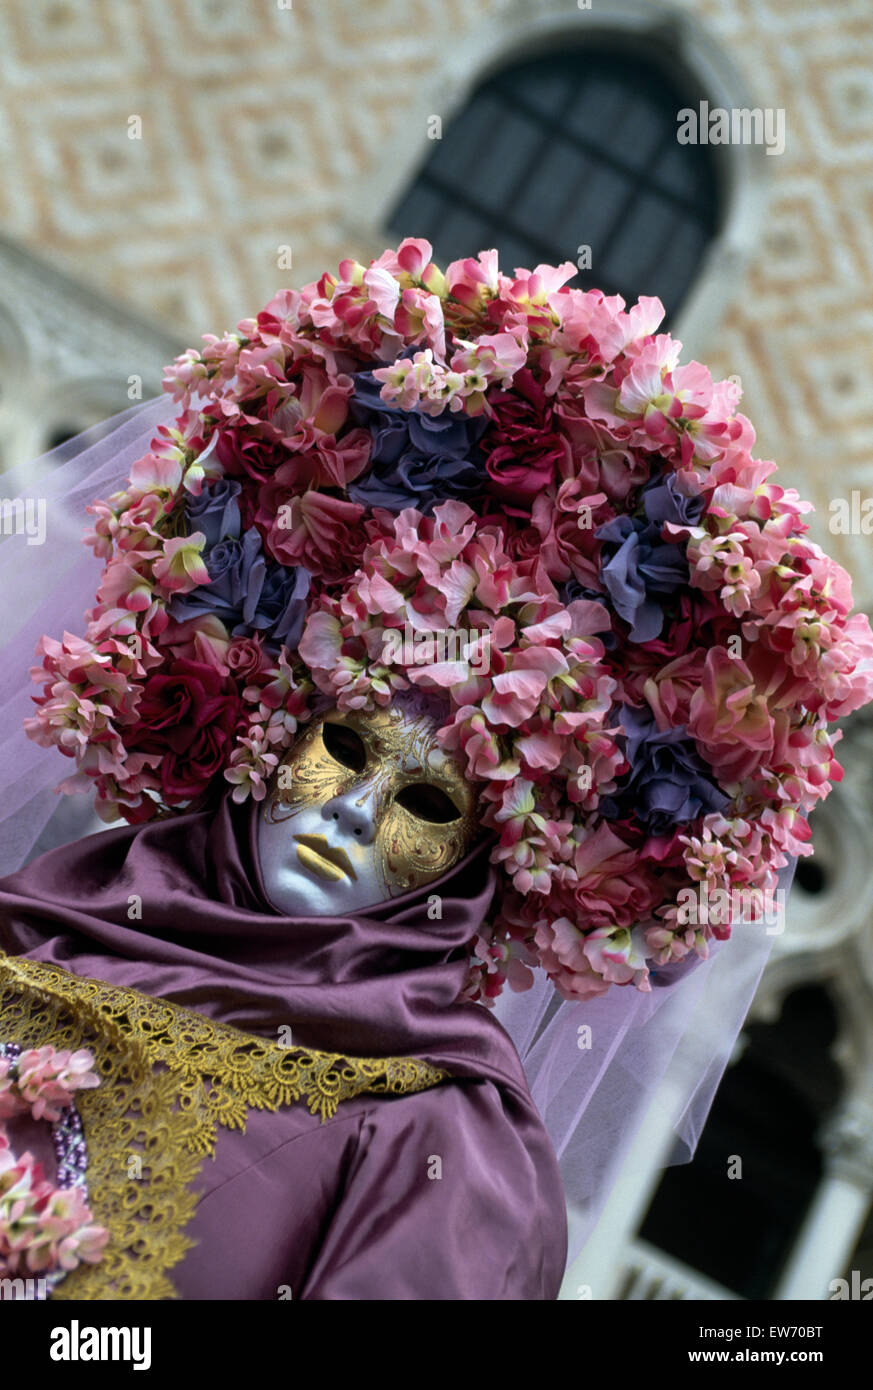 A Reveller wearing traditional mask and robes at the Carnival in Venice         FOR EDITORIAL USE ONLY - Stock Image